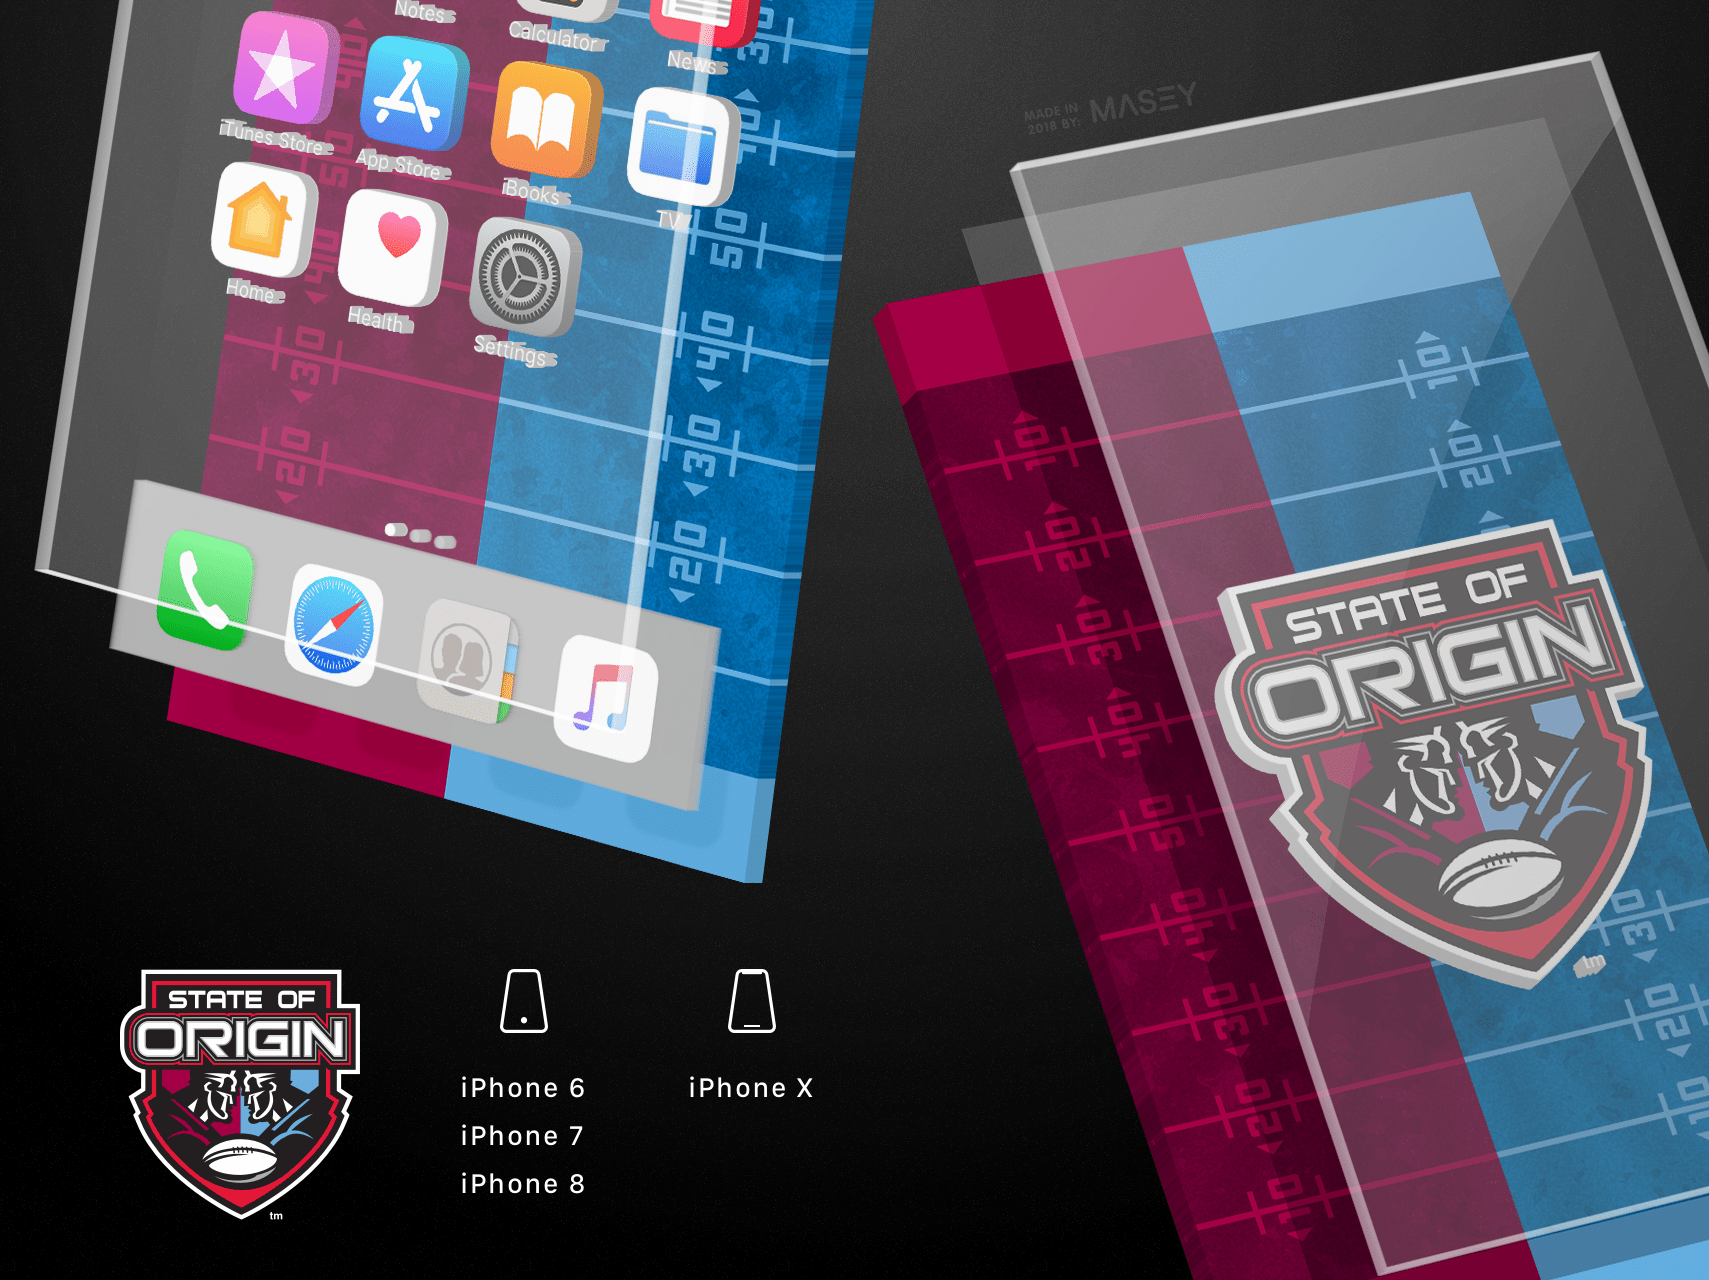 State of Origin Field iPhone Wallpaper